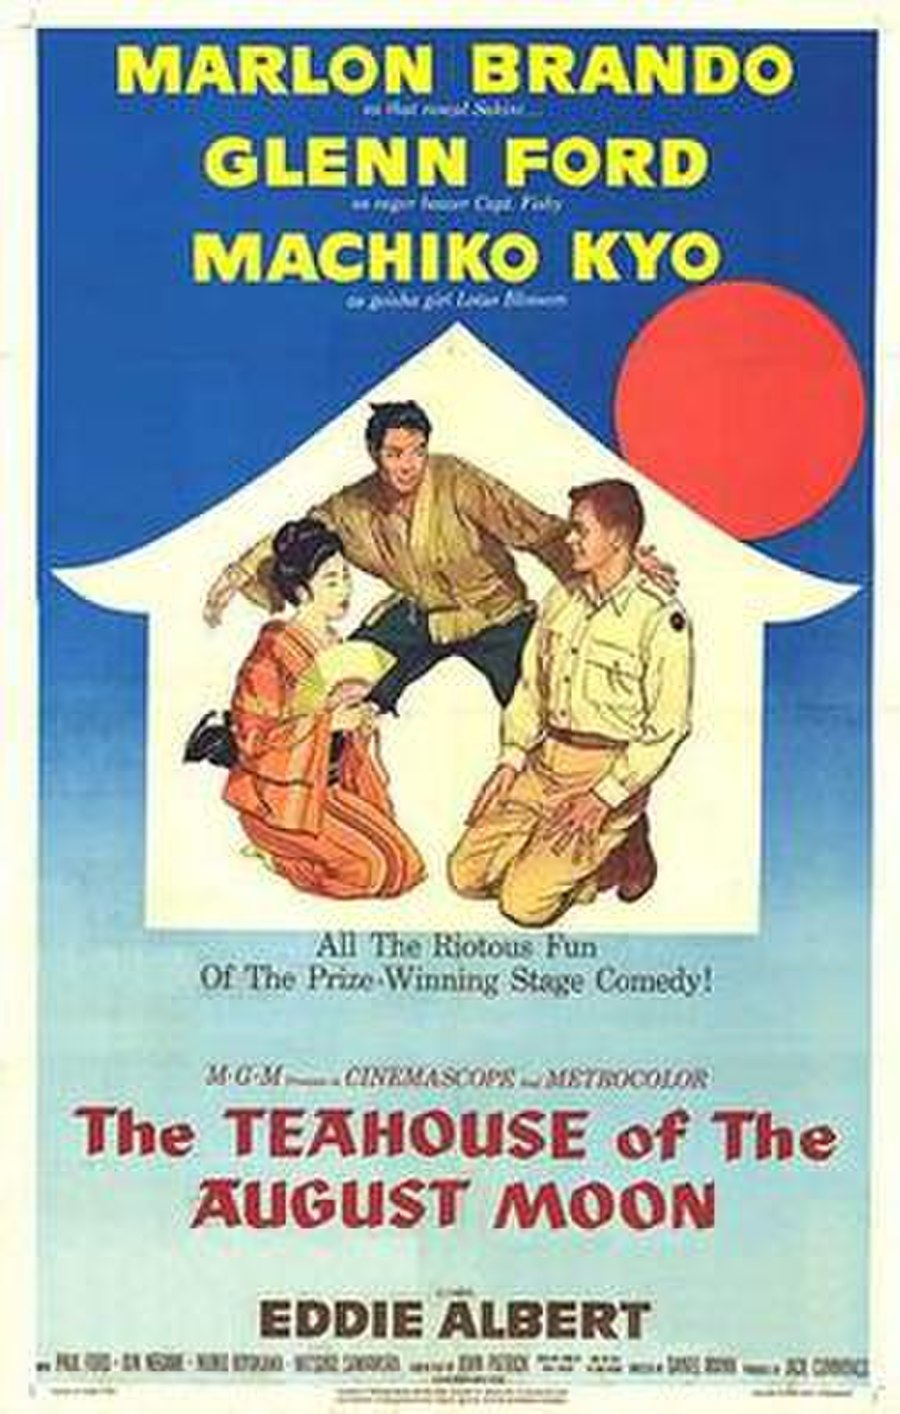 The Teahouse of the August Moon